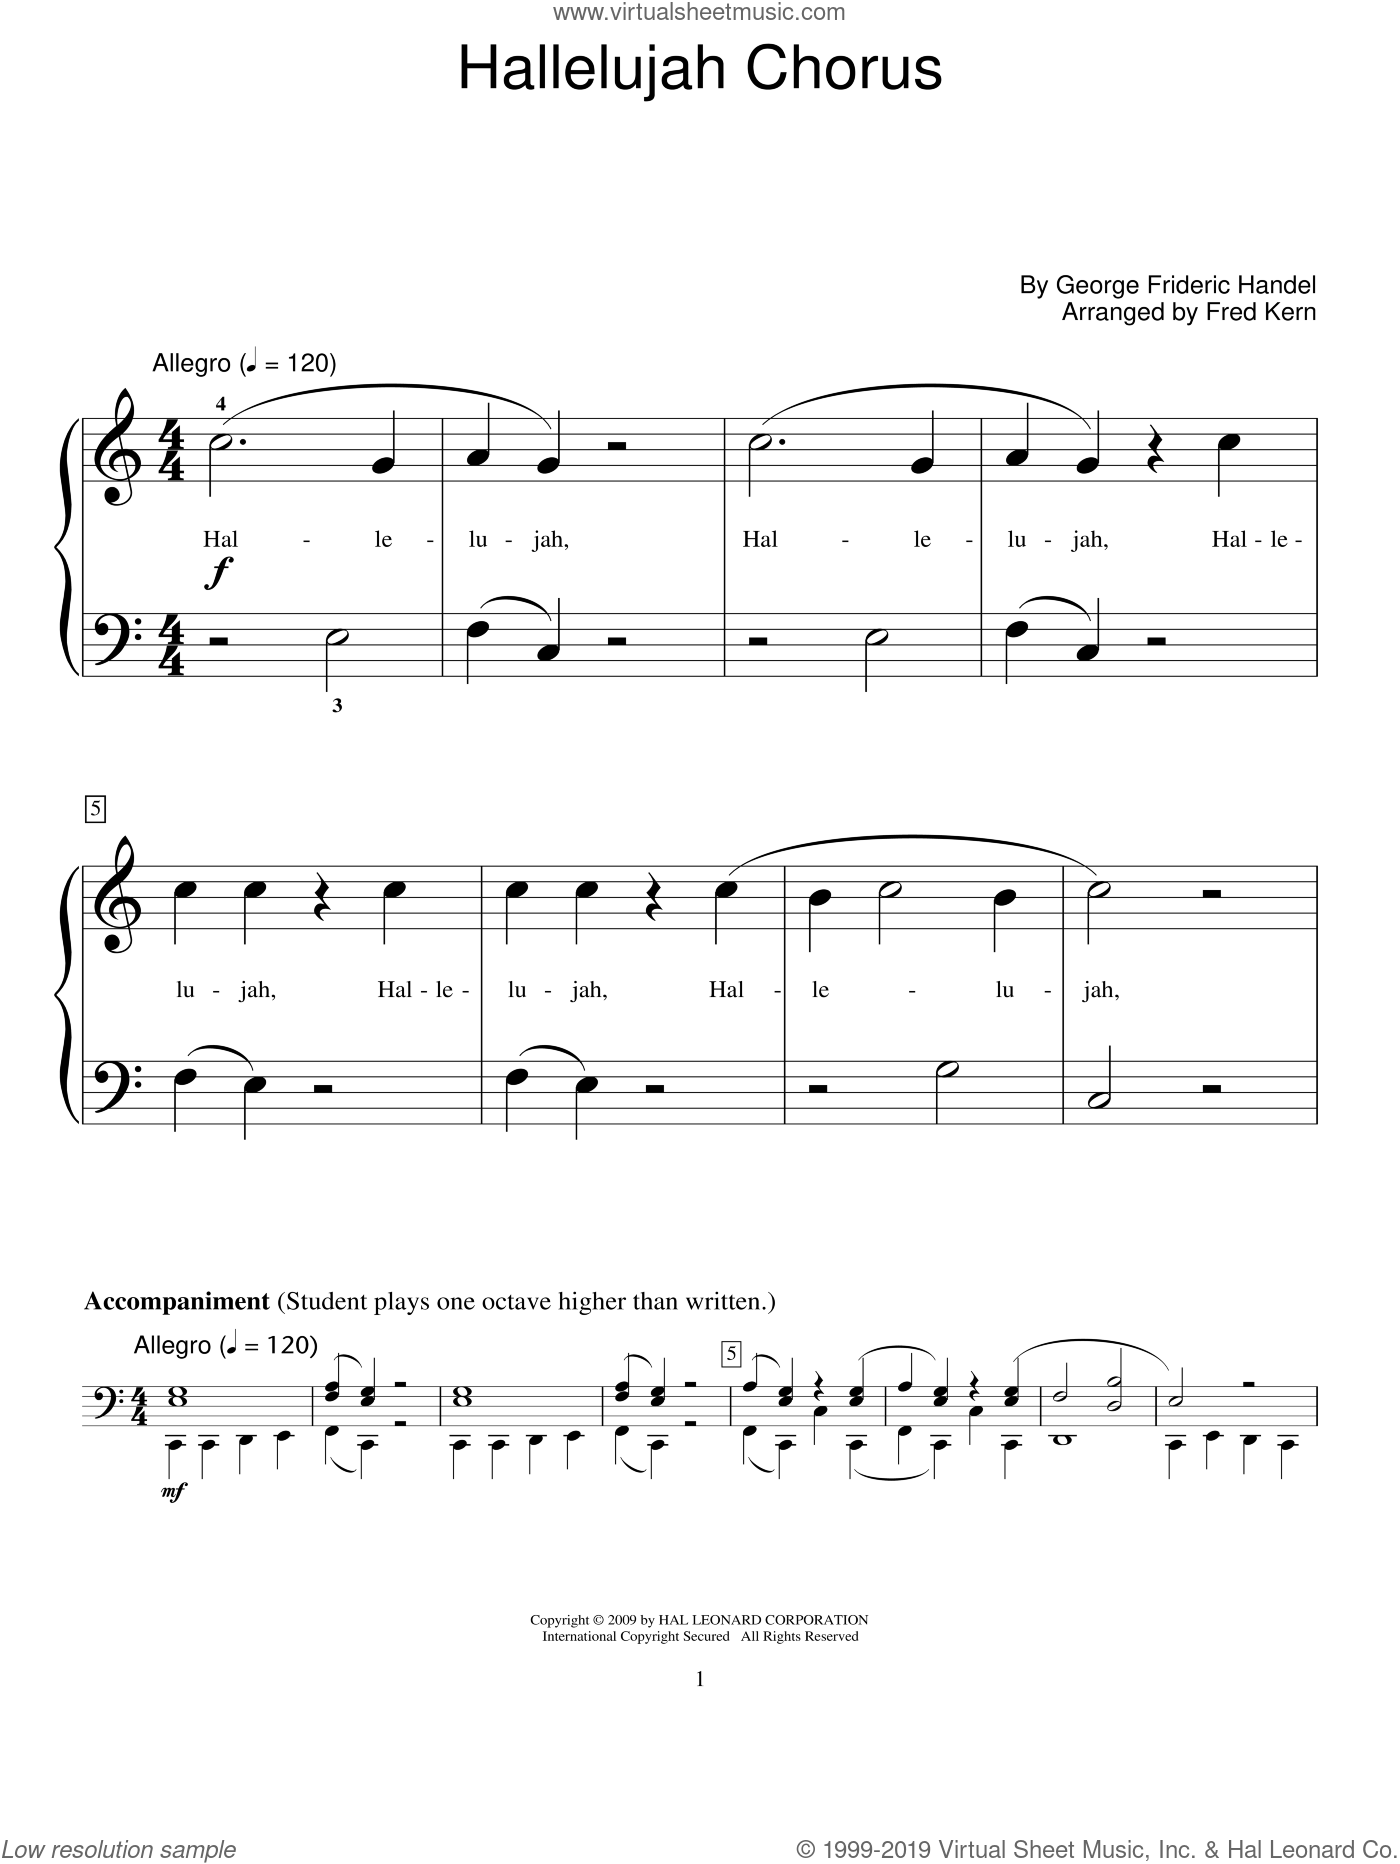 Hallelujah Chorus sheet music for piano solo (elementary) by George Frideric Handel